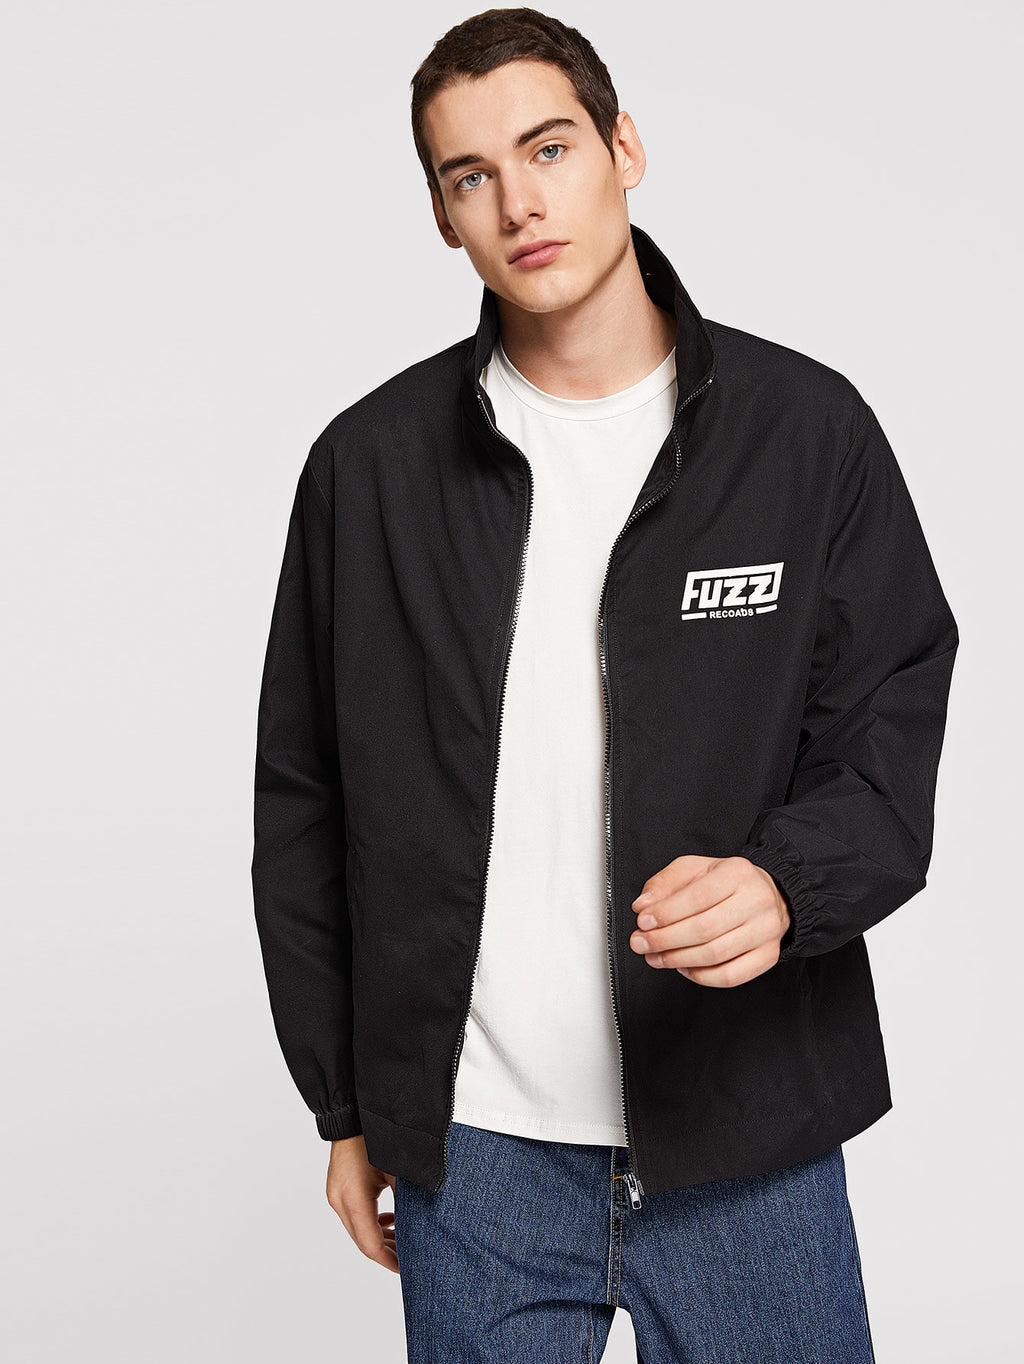 Workout Jackets - Men Letter Detail Zipper Jacket